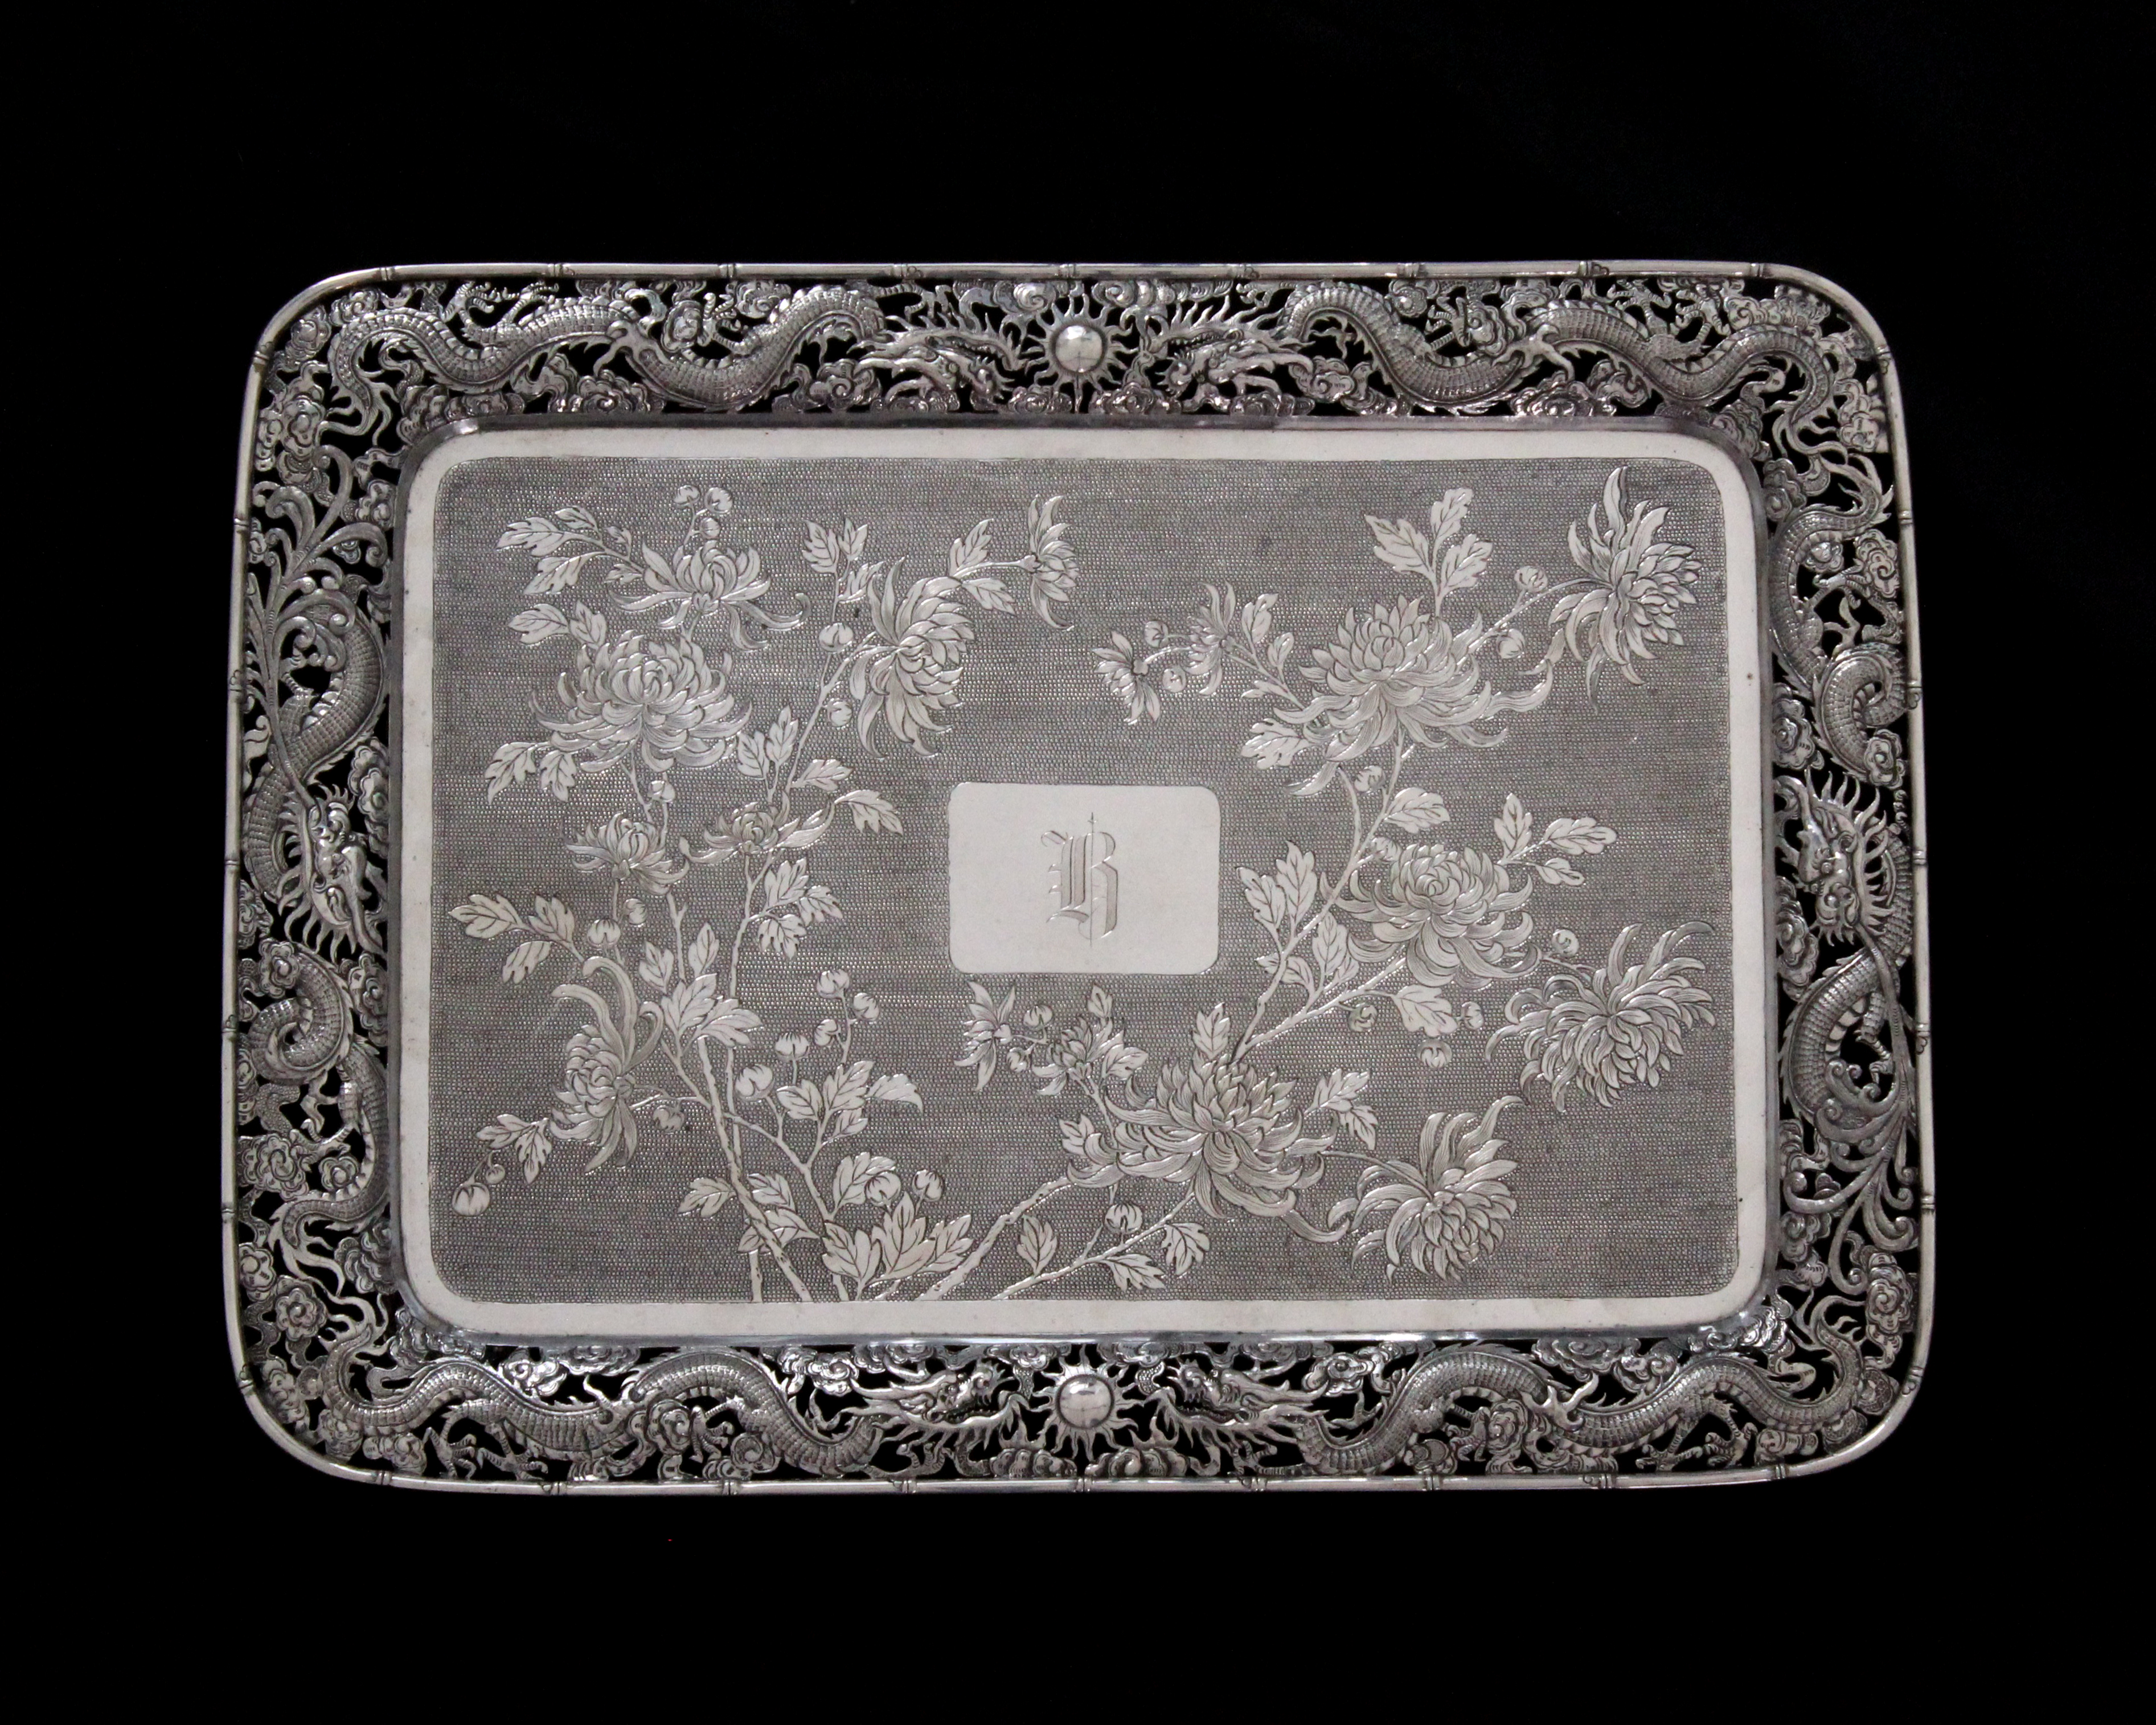 An antique late Qing dynasty Chinese Export Silver tray by Hung Chong of Canton & Shanghai circa